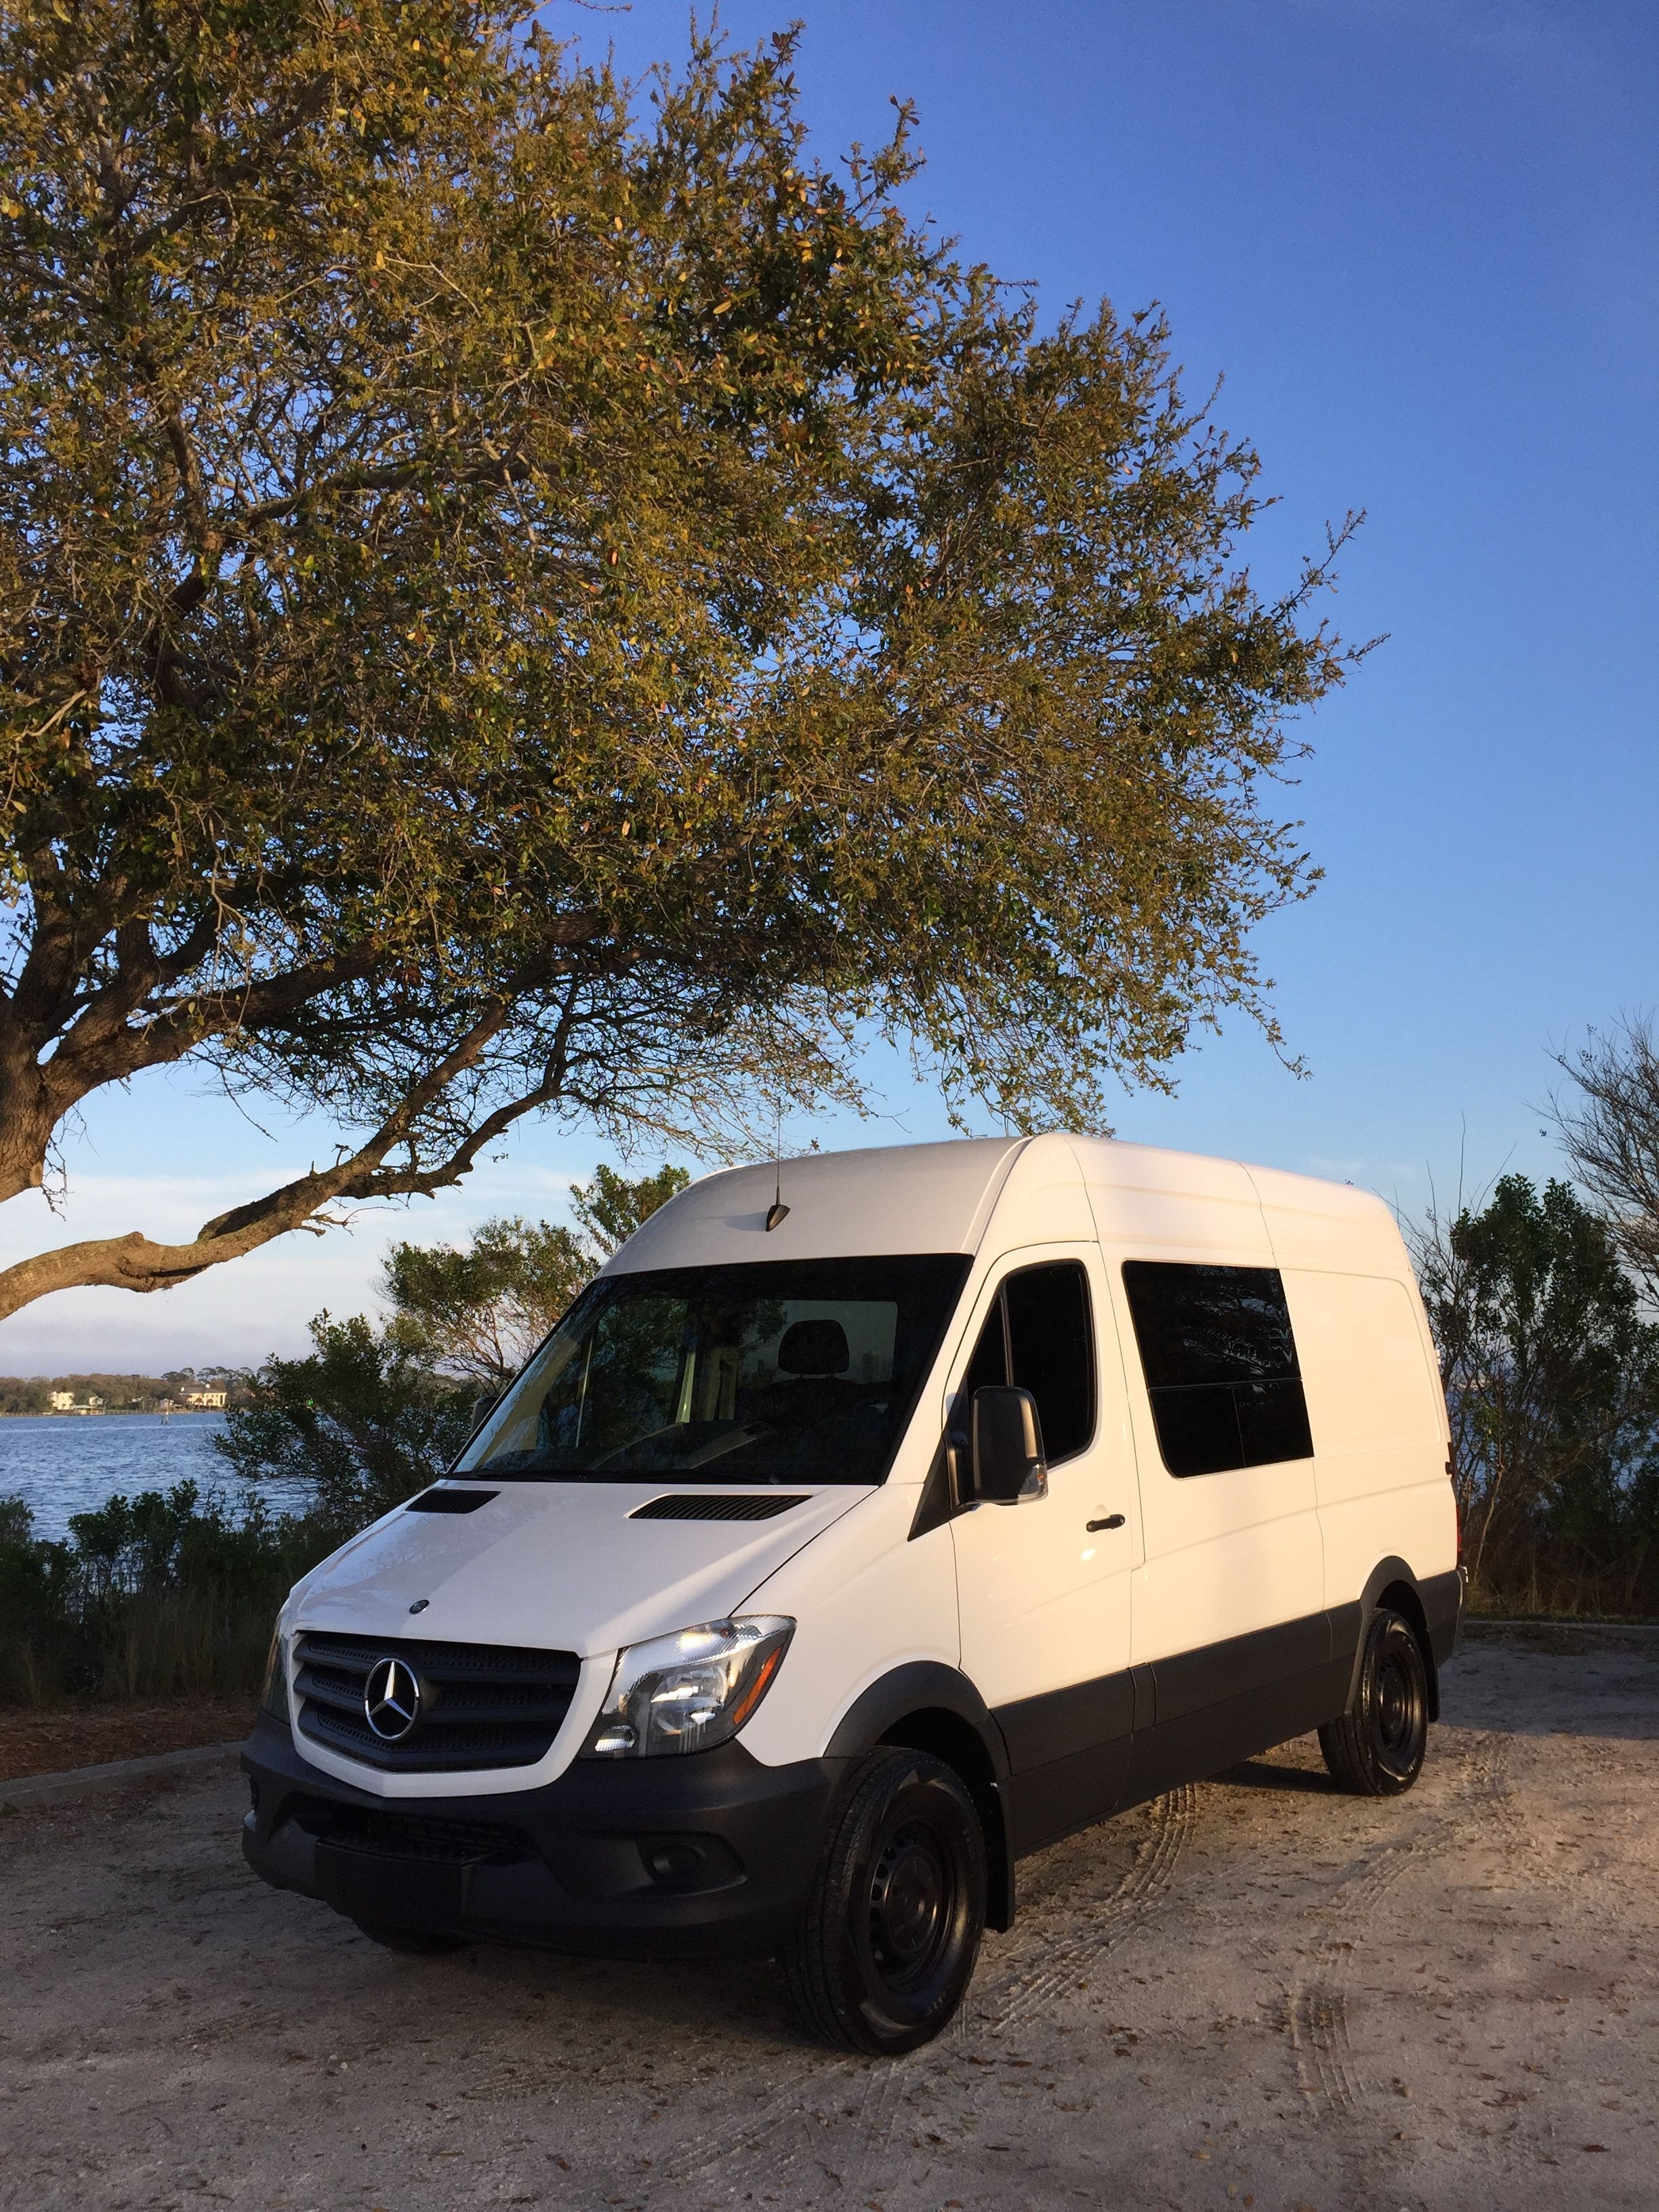 rental an awning and sleeper for includes cab conditioning benz outlet product siesta queen mercedes bed rv over master storage a exterior in heat sprinter the sale air